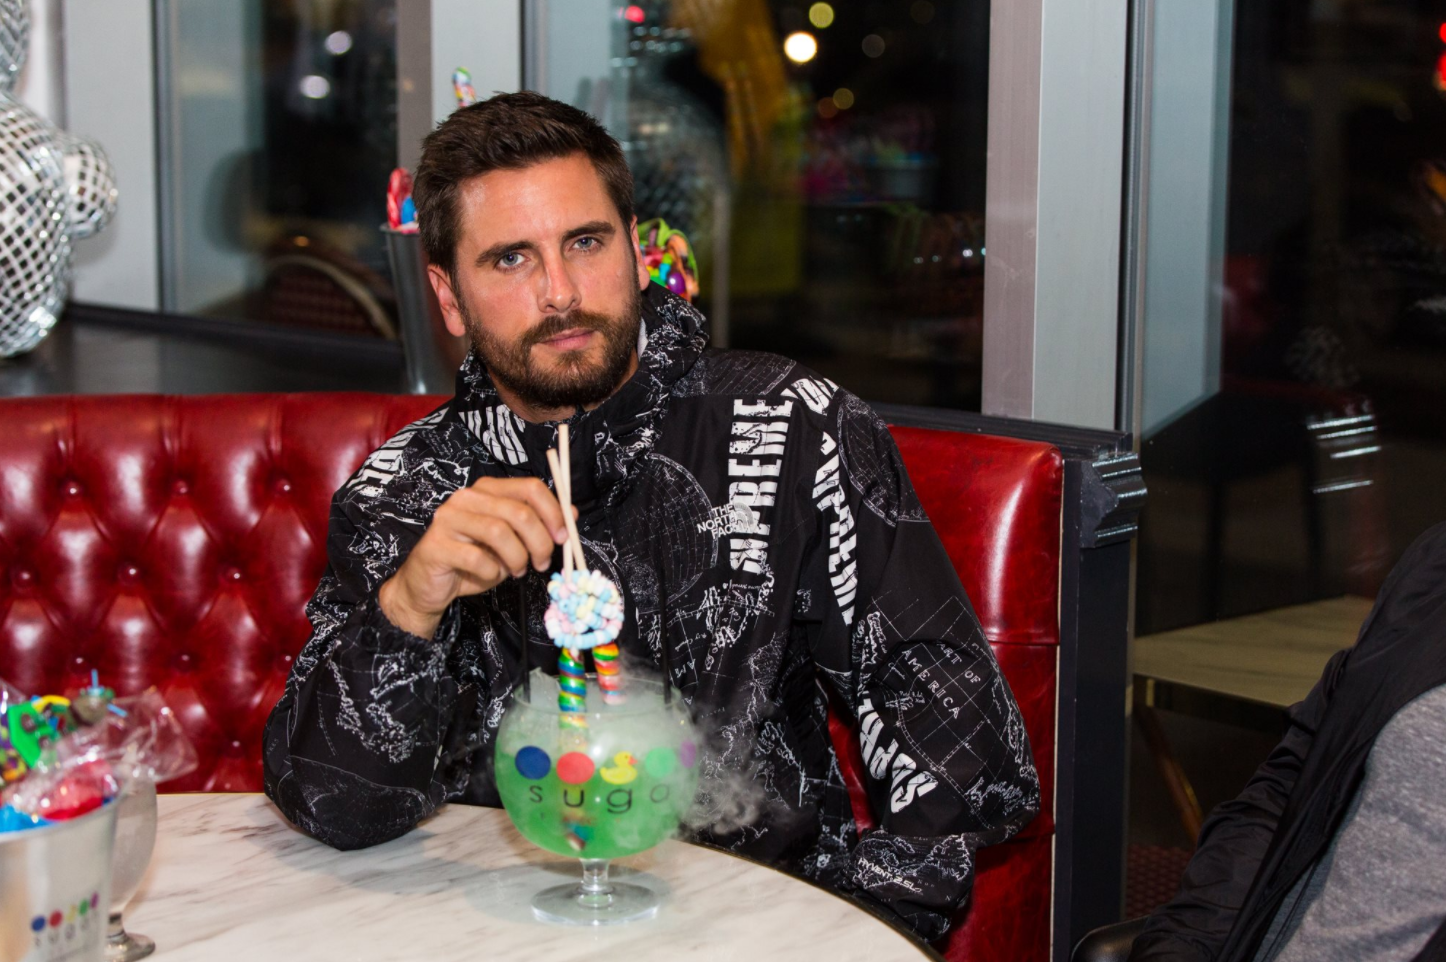 Disick enjoys a Lollipop Passion Goblet at Sugar Factory. (Image: John Robinson)